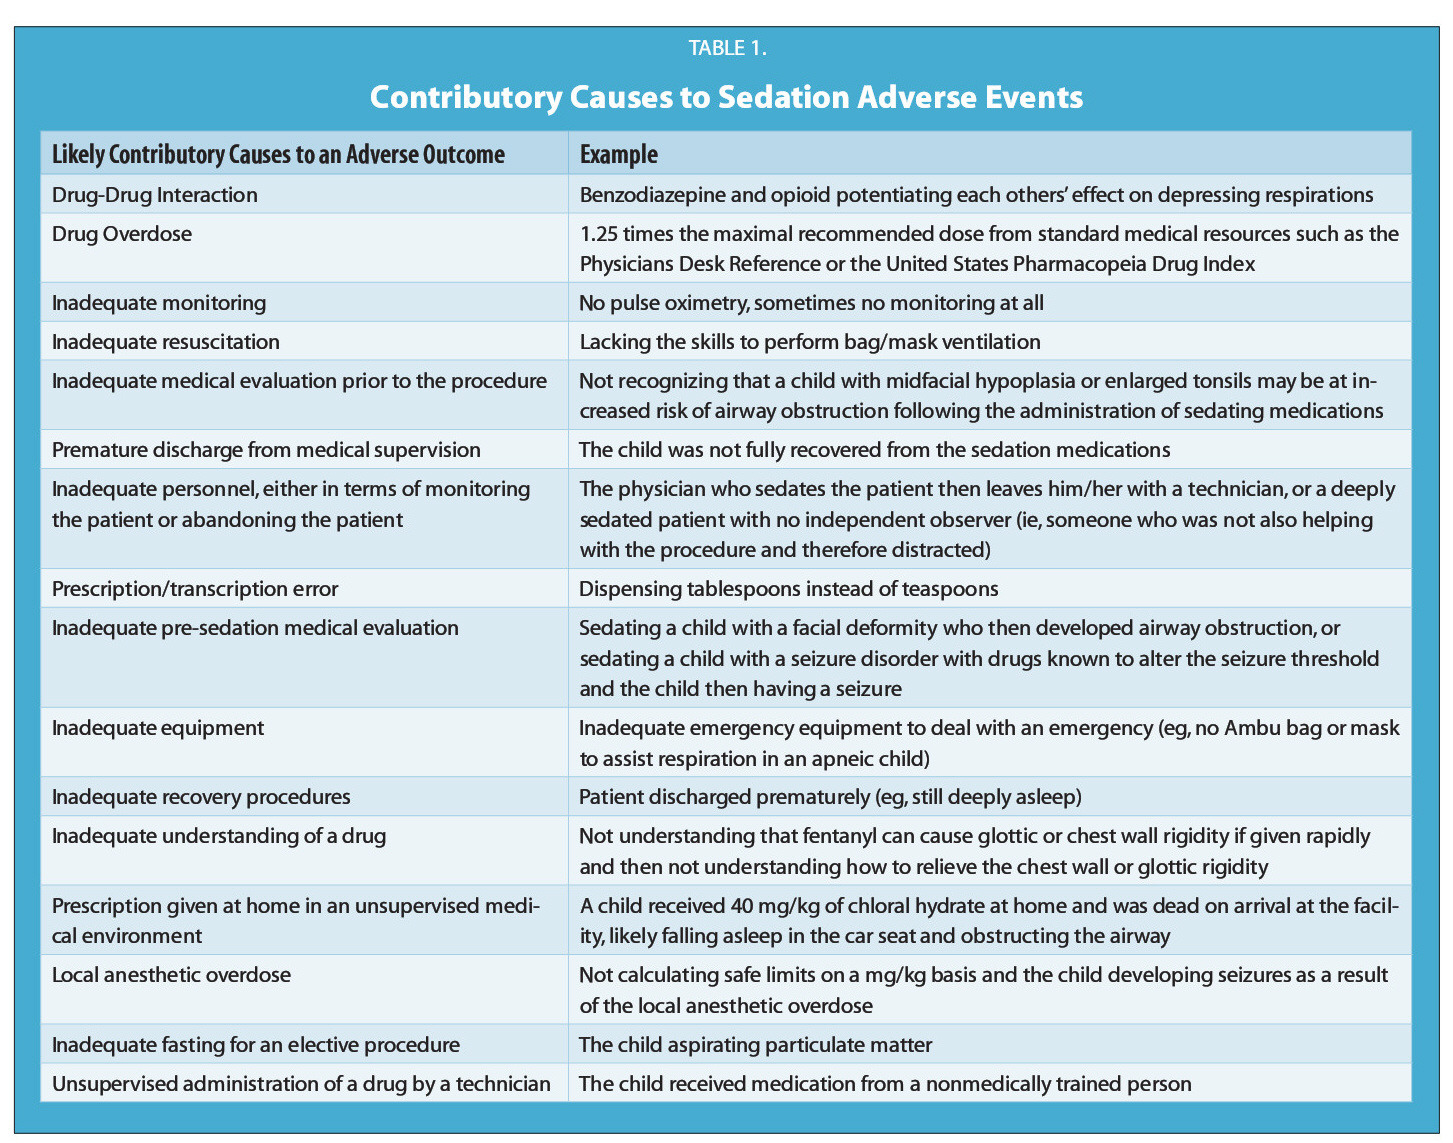 TABLE 1.Contributory Causes to Sedation Adverse Events